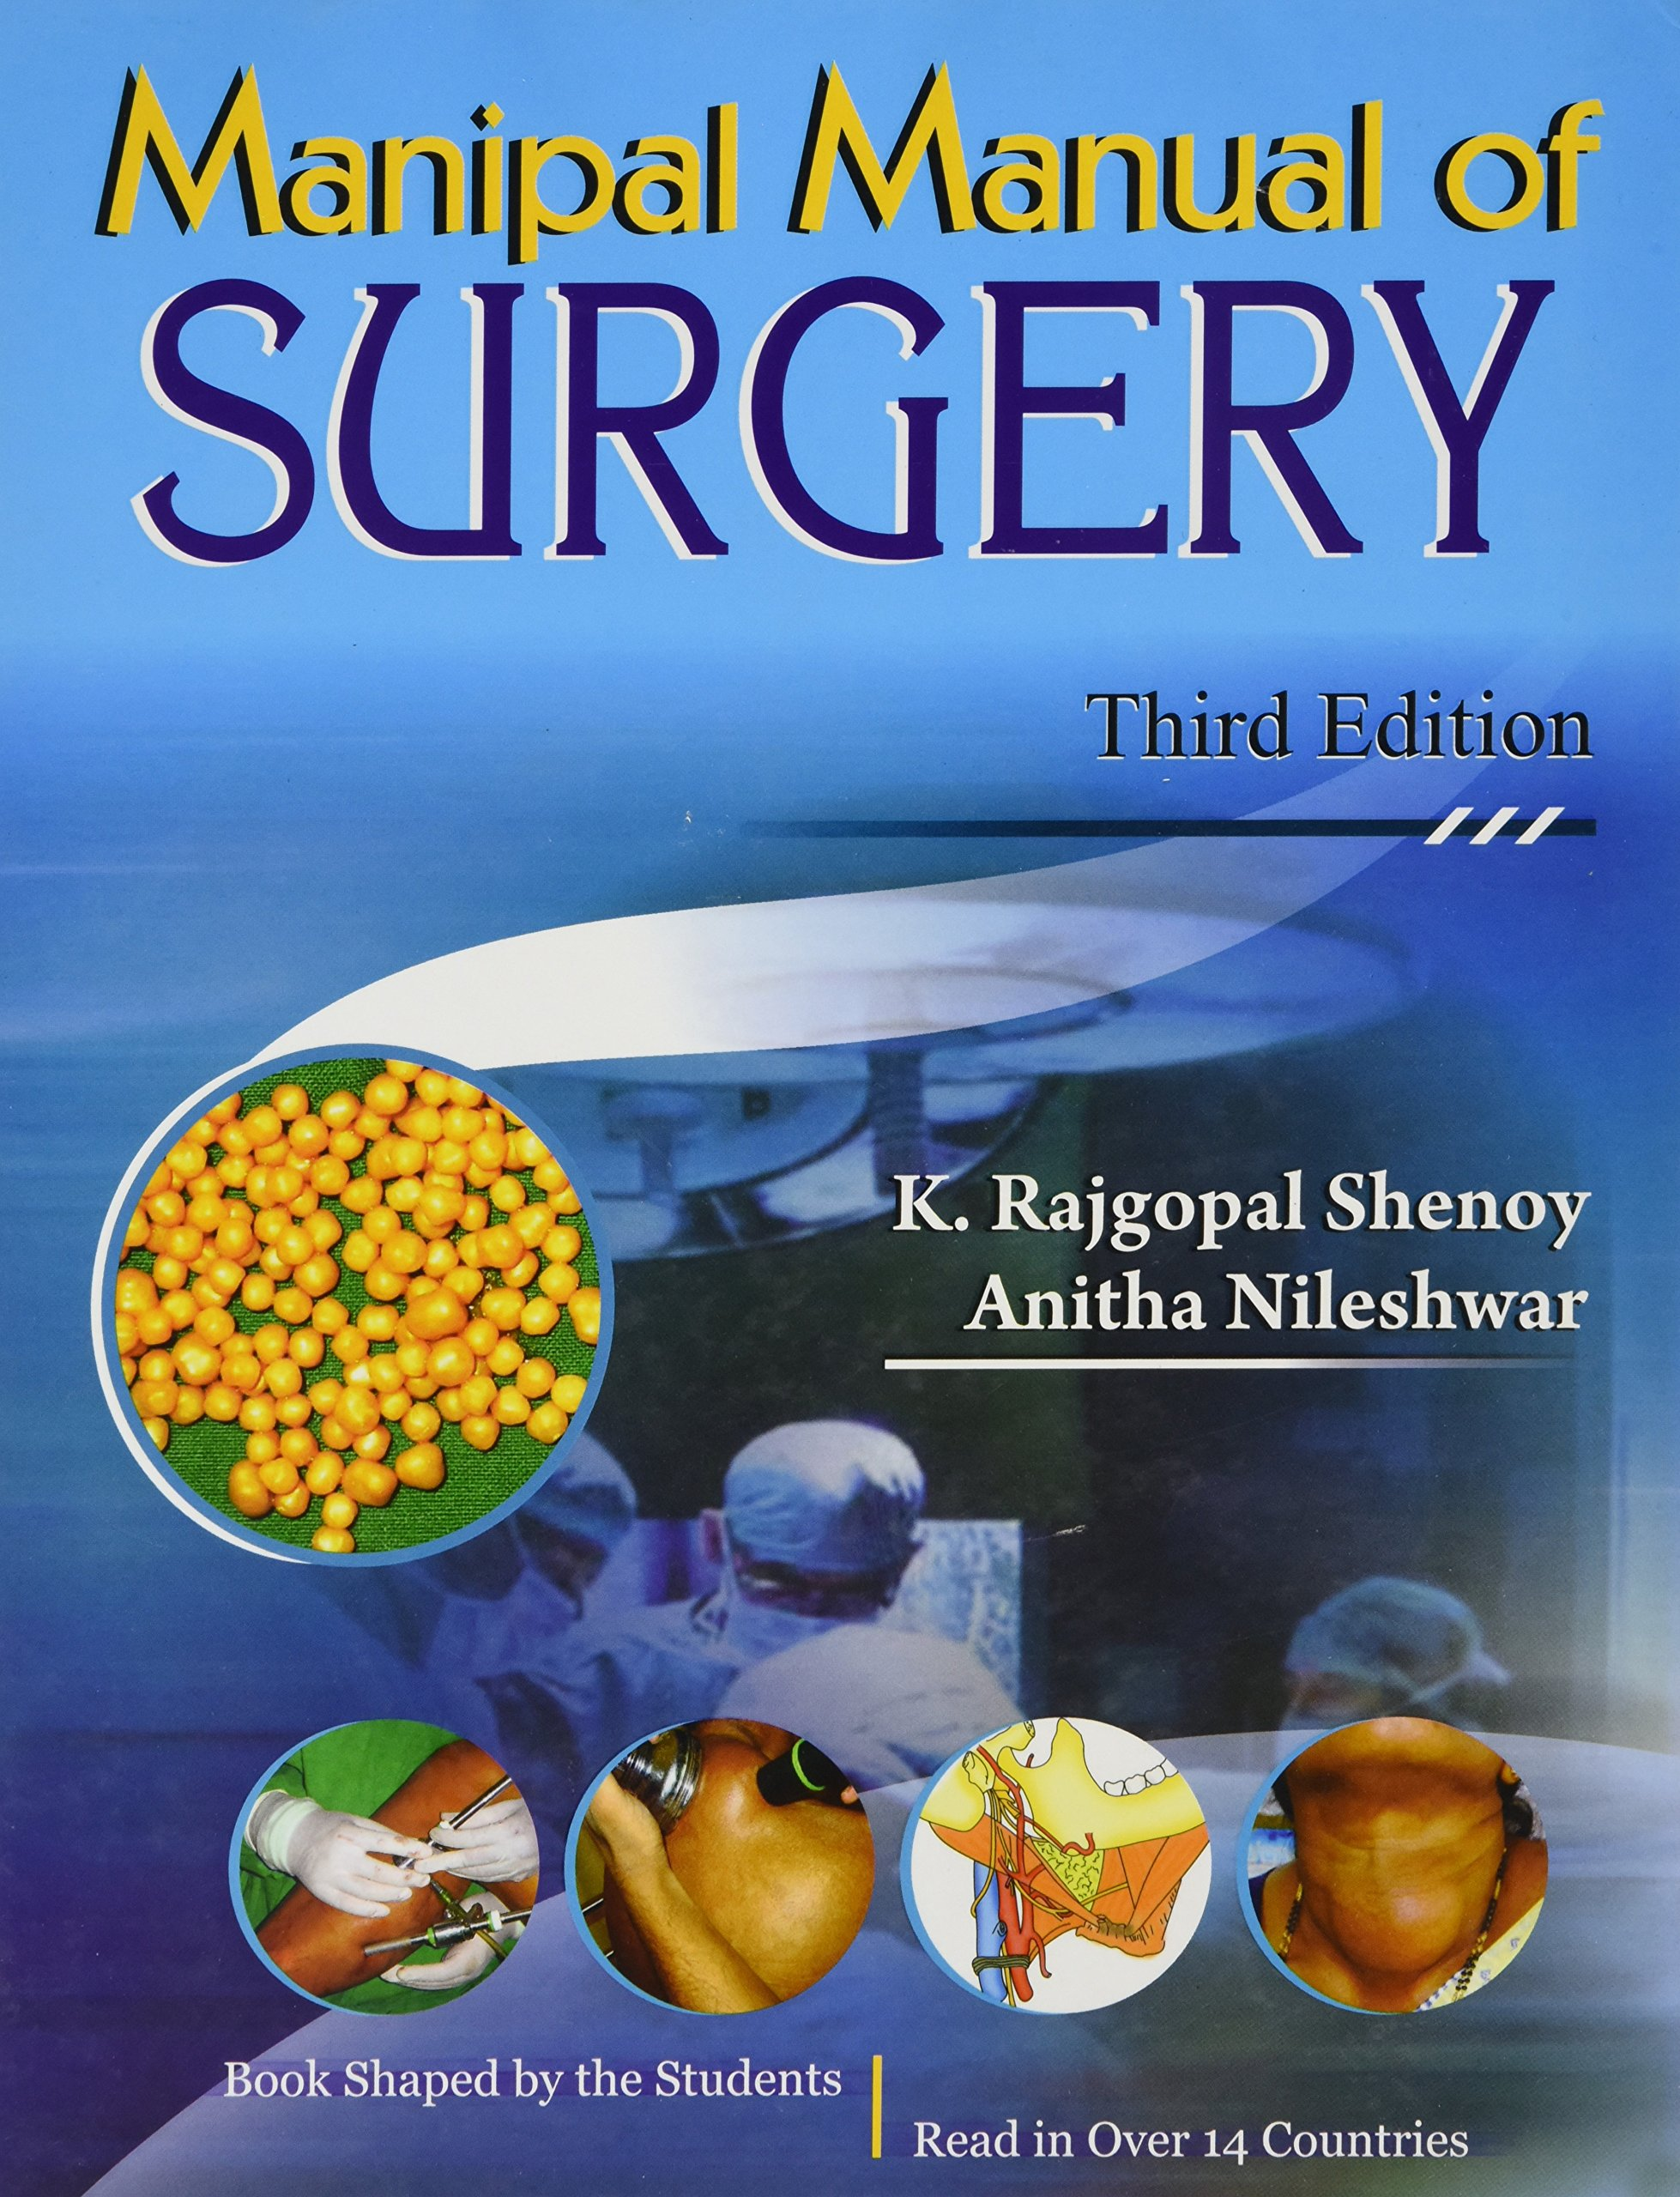 Buy Manipal Manual of Surgery Book Online at Low Prices in India | Manipal  Manual of Surgery Reviews & Ratings - Amazon.in